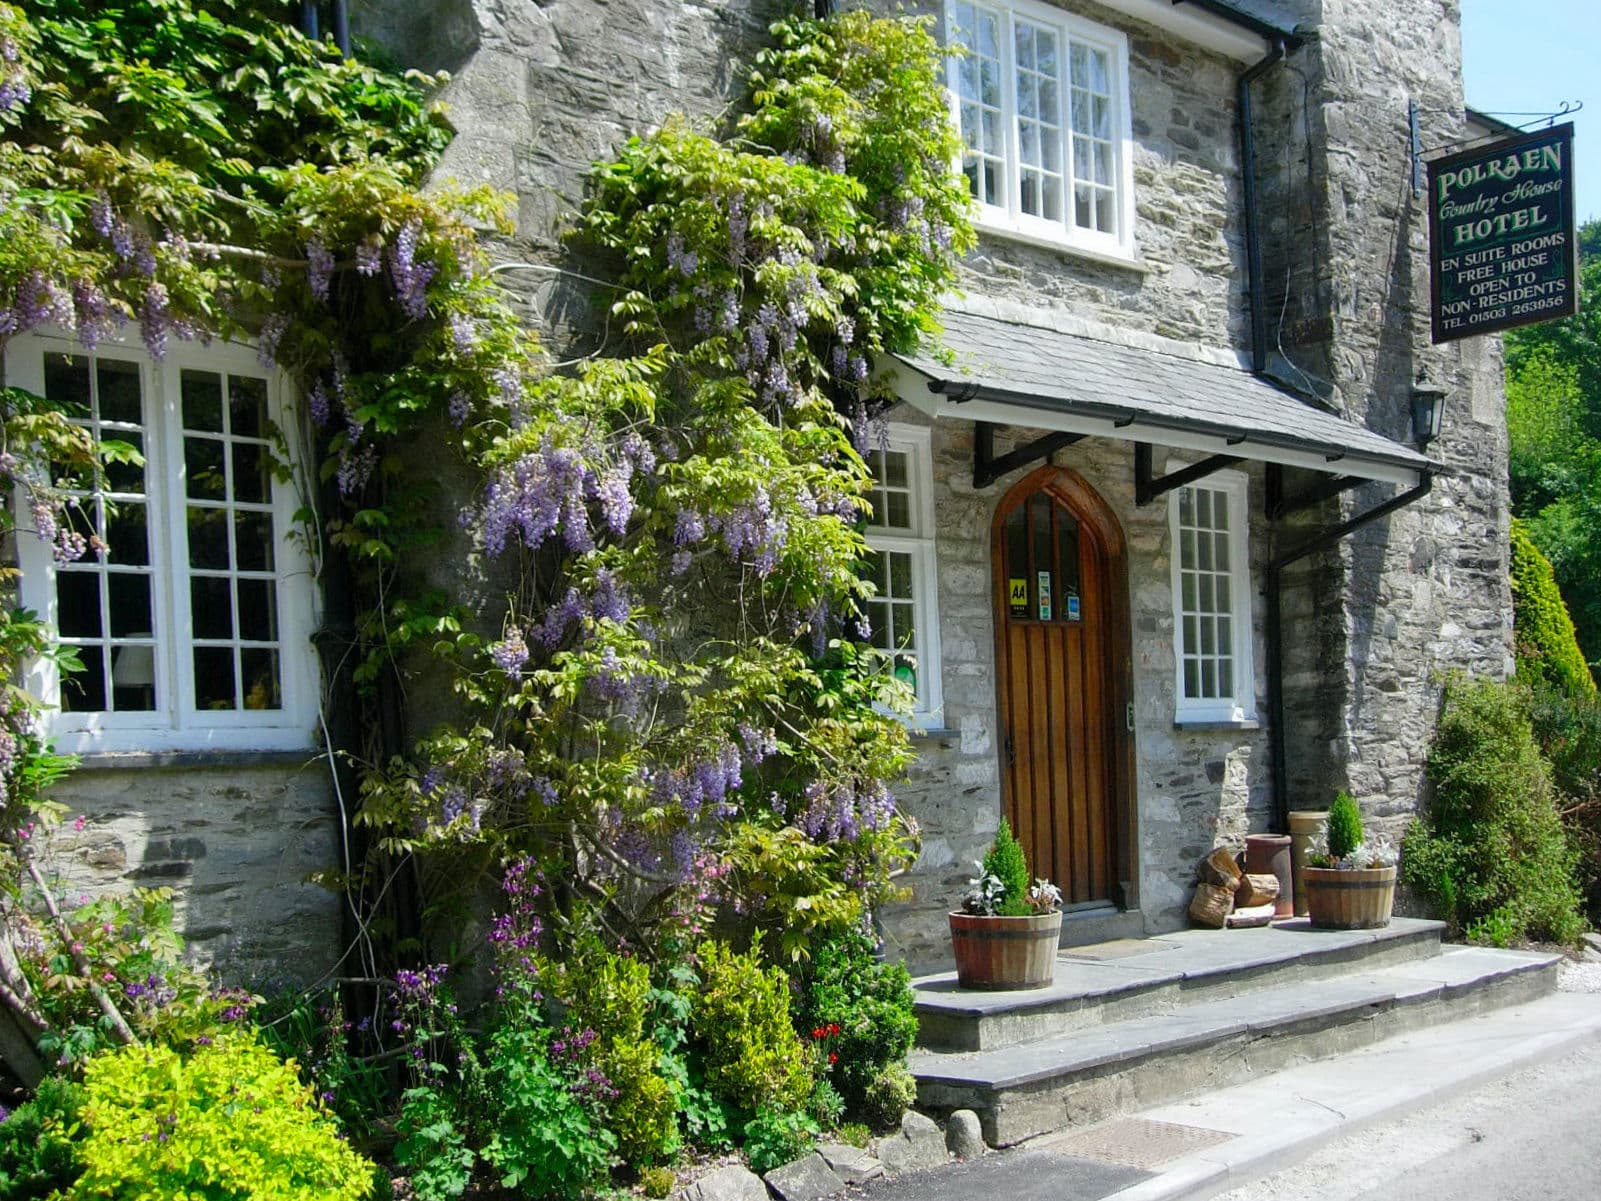 Welcome to Polraen Country House